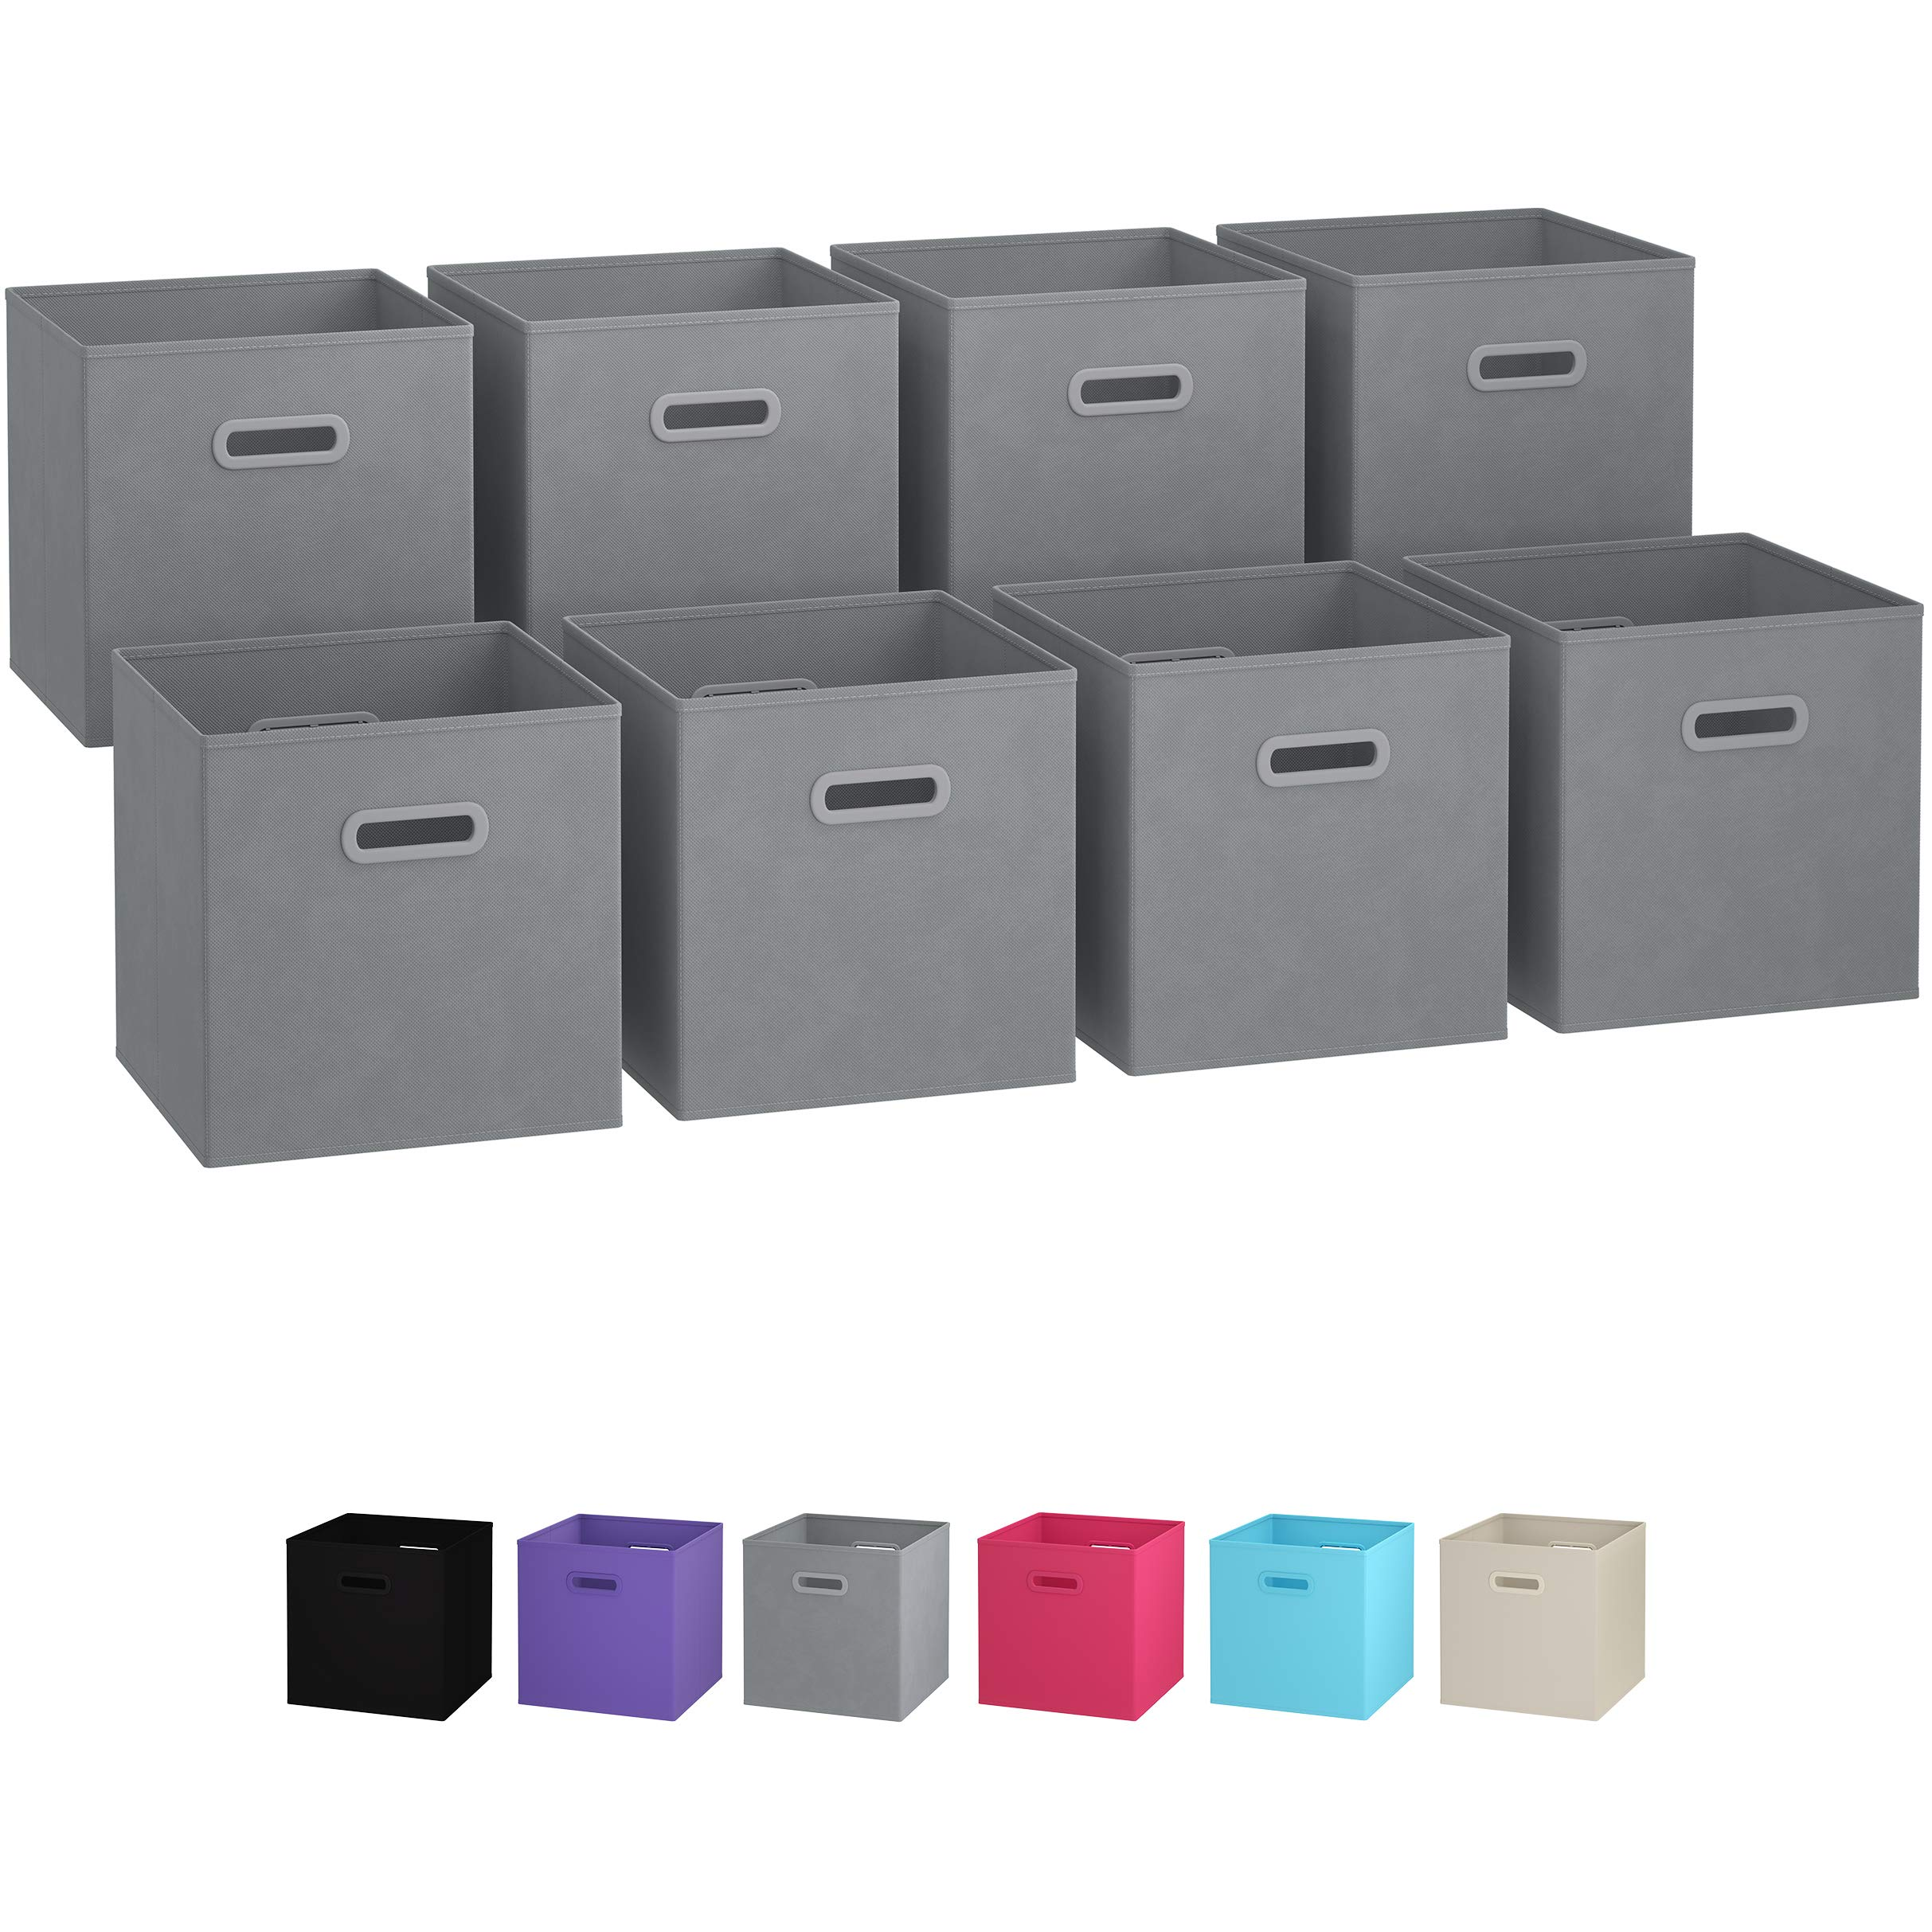 Royexe - Storage Cubes - (Set of 8) Storage Baskets | Features Dual Handles | Cube Storage Bins | Foldable Fabric Closet Shelf Organizer | Drawer Organizers and Storage (Grey)